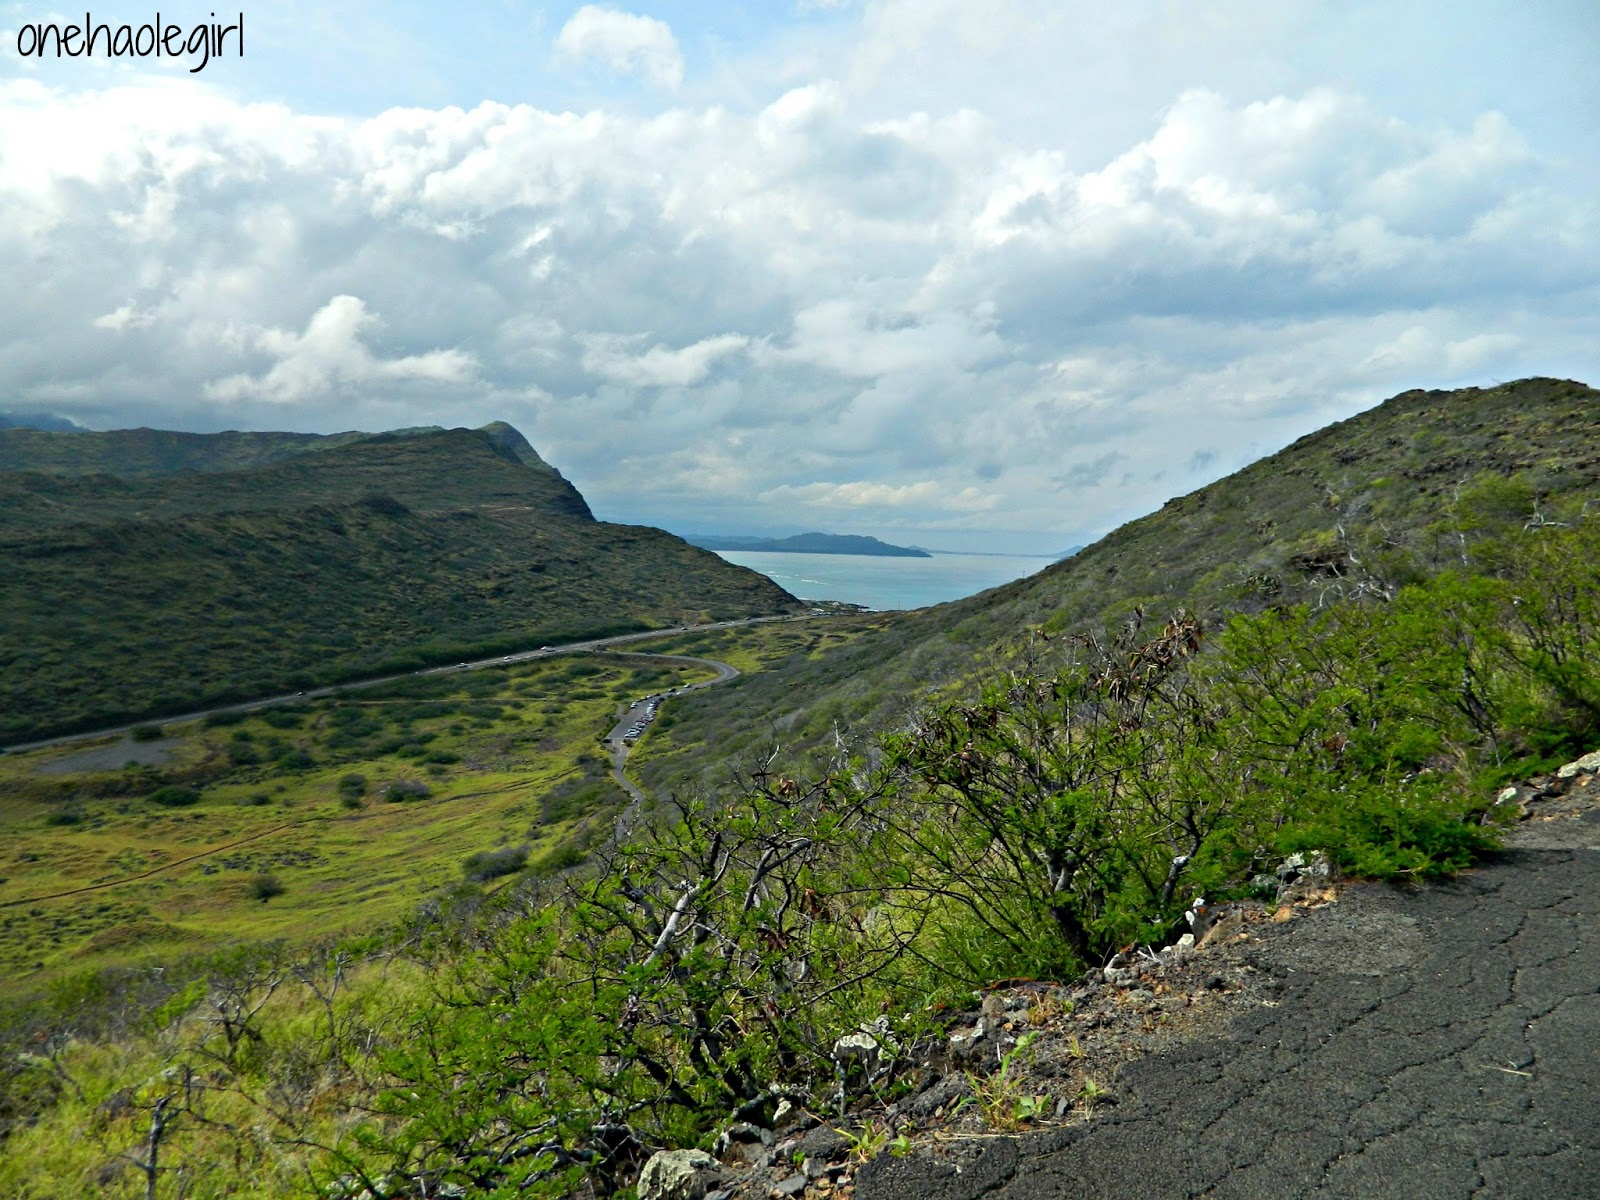 how to get to makapuu lighthouse trail by bus